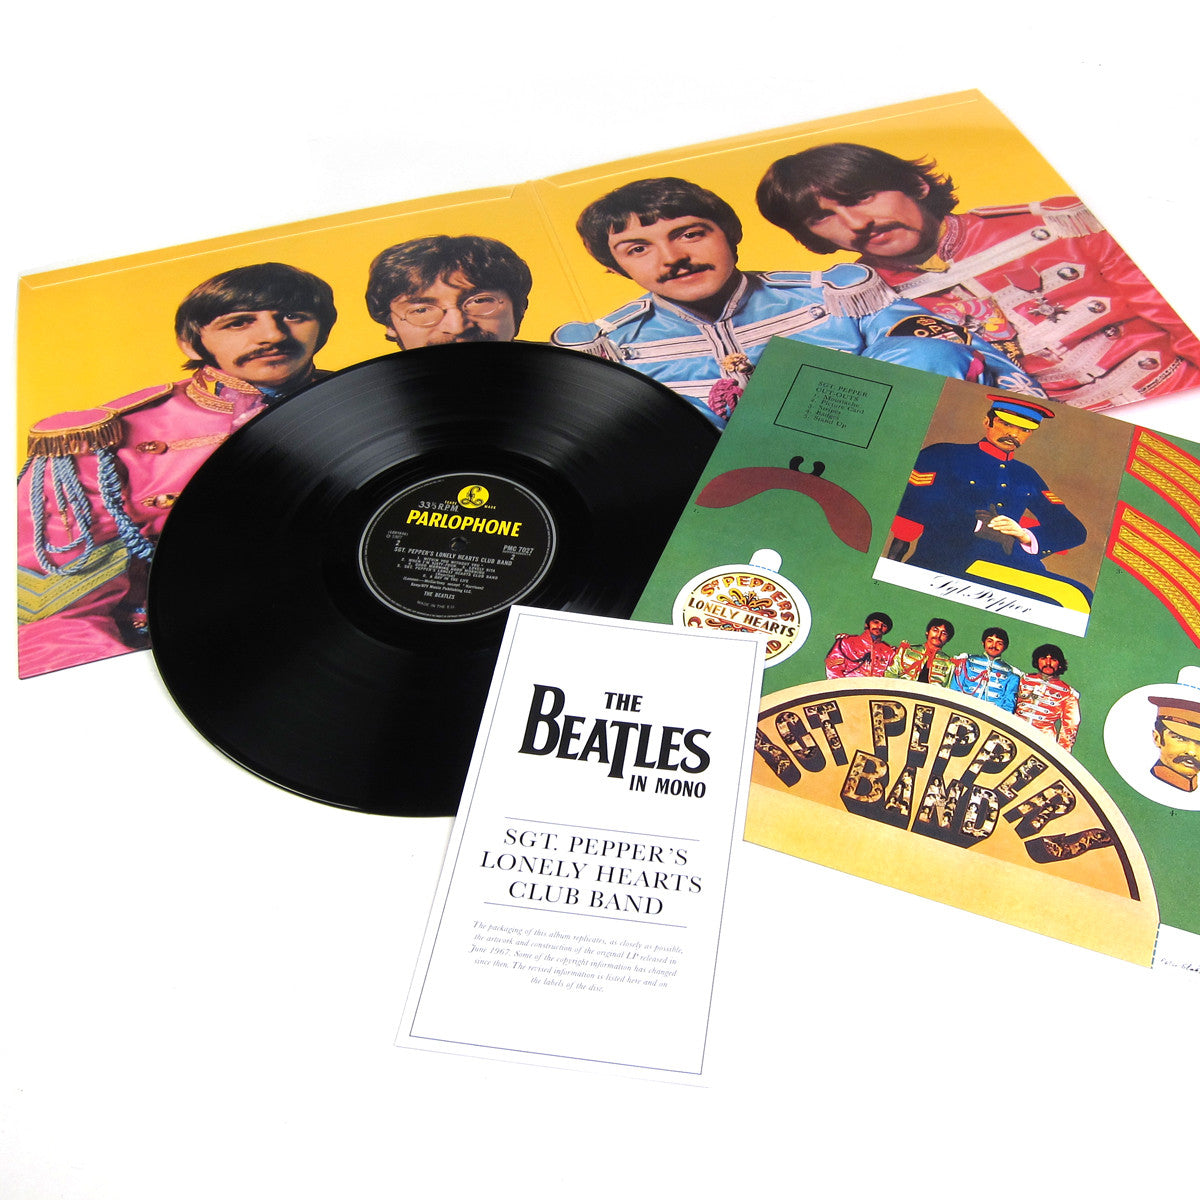 The Beatles: Sgt. Pepper's Lonely Heart Club Band in Mono (180g) Vinyl LP detail